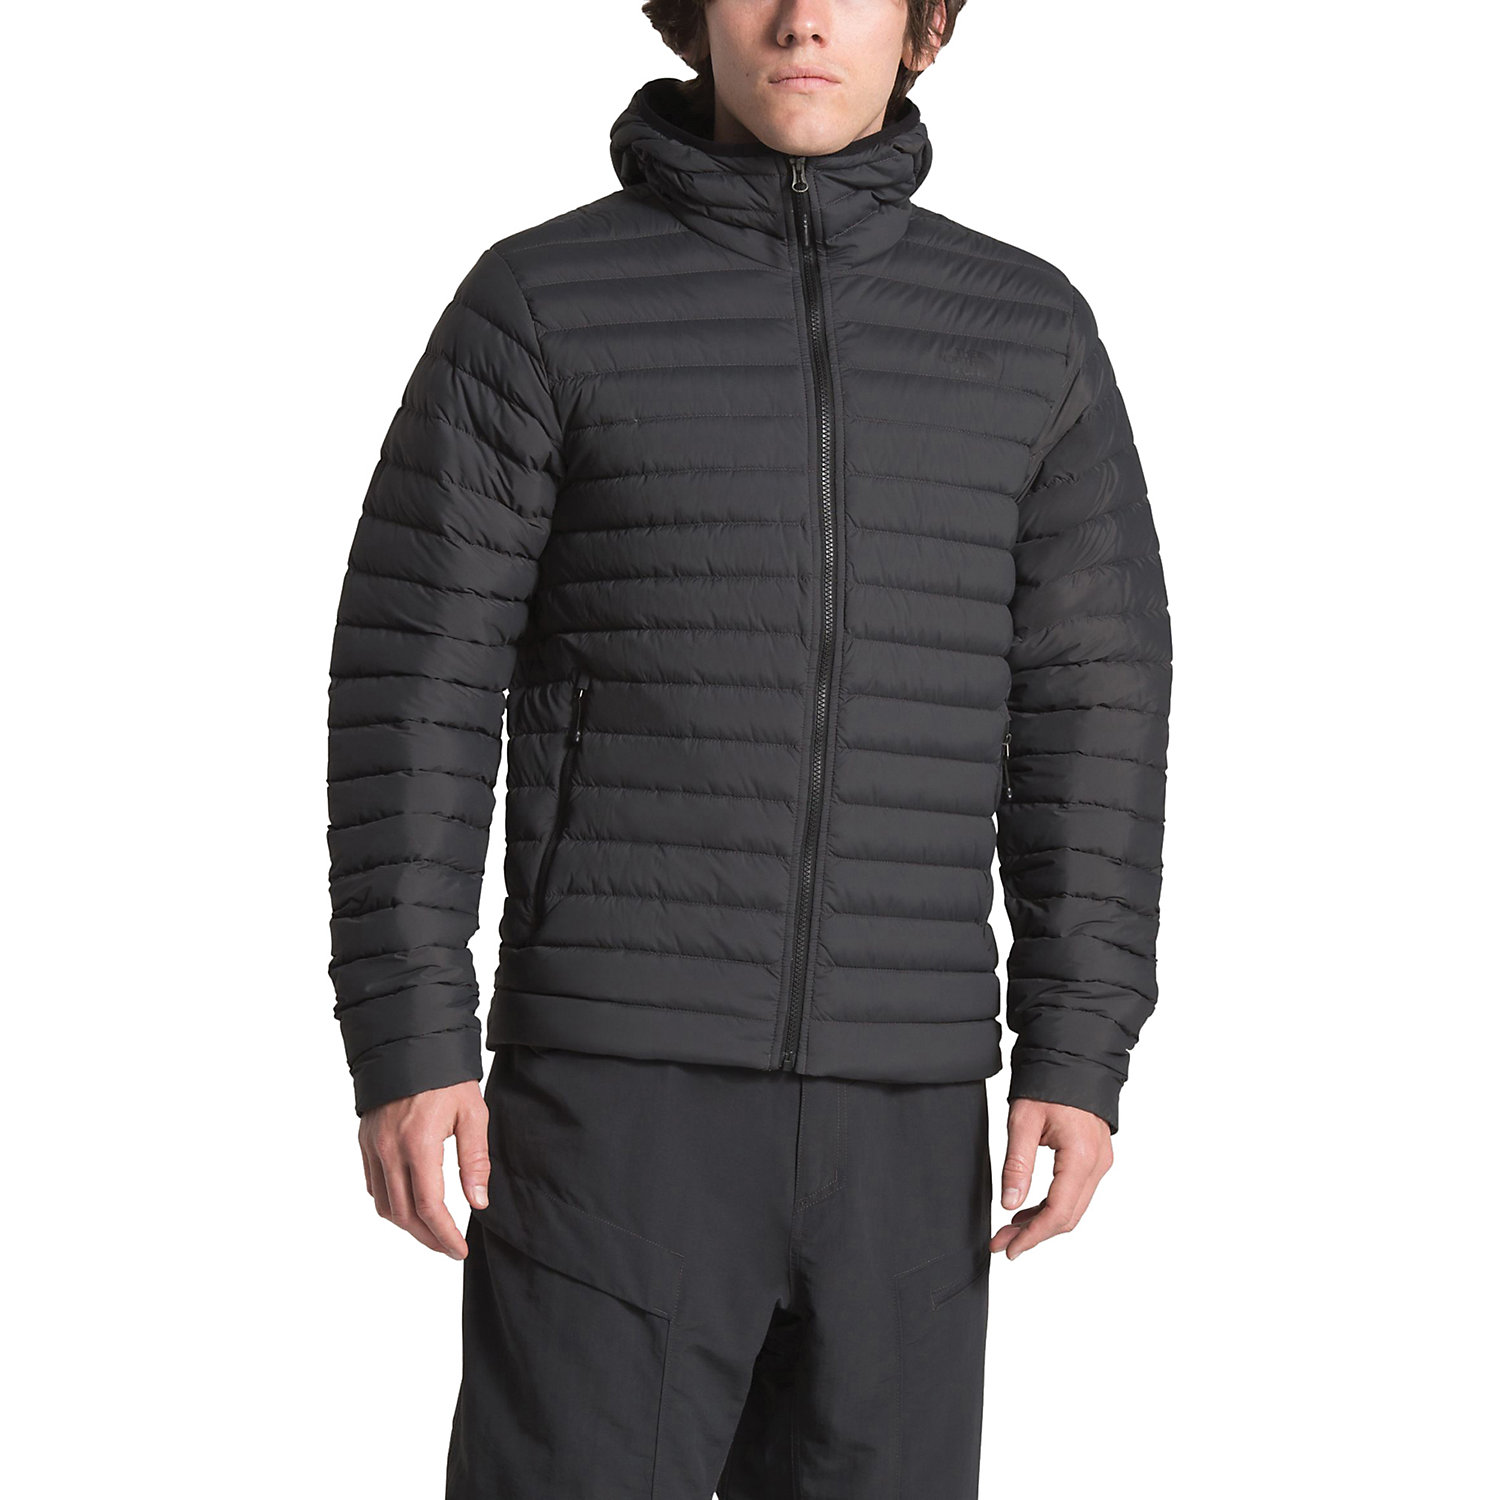 020e035a7 The North Face Men's Stretch Down Hoodie